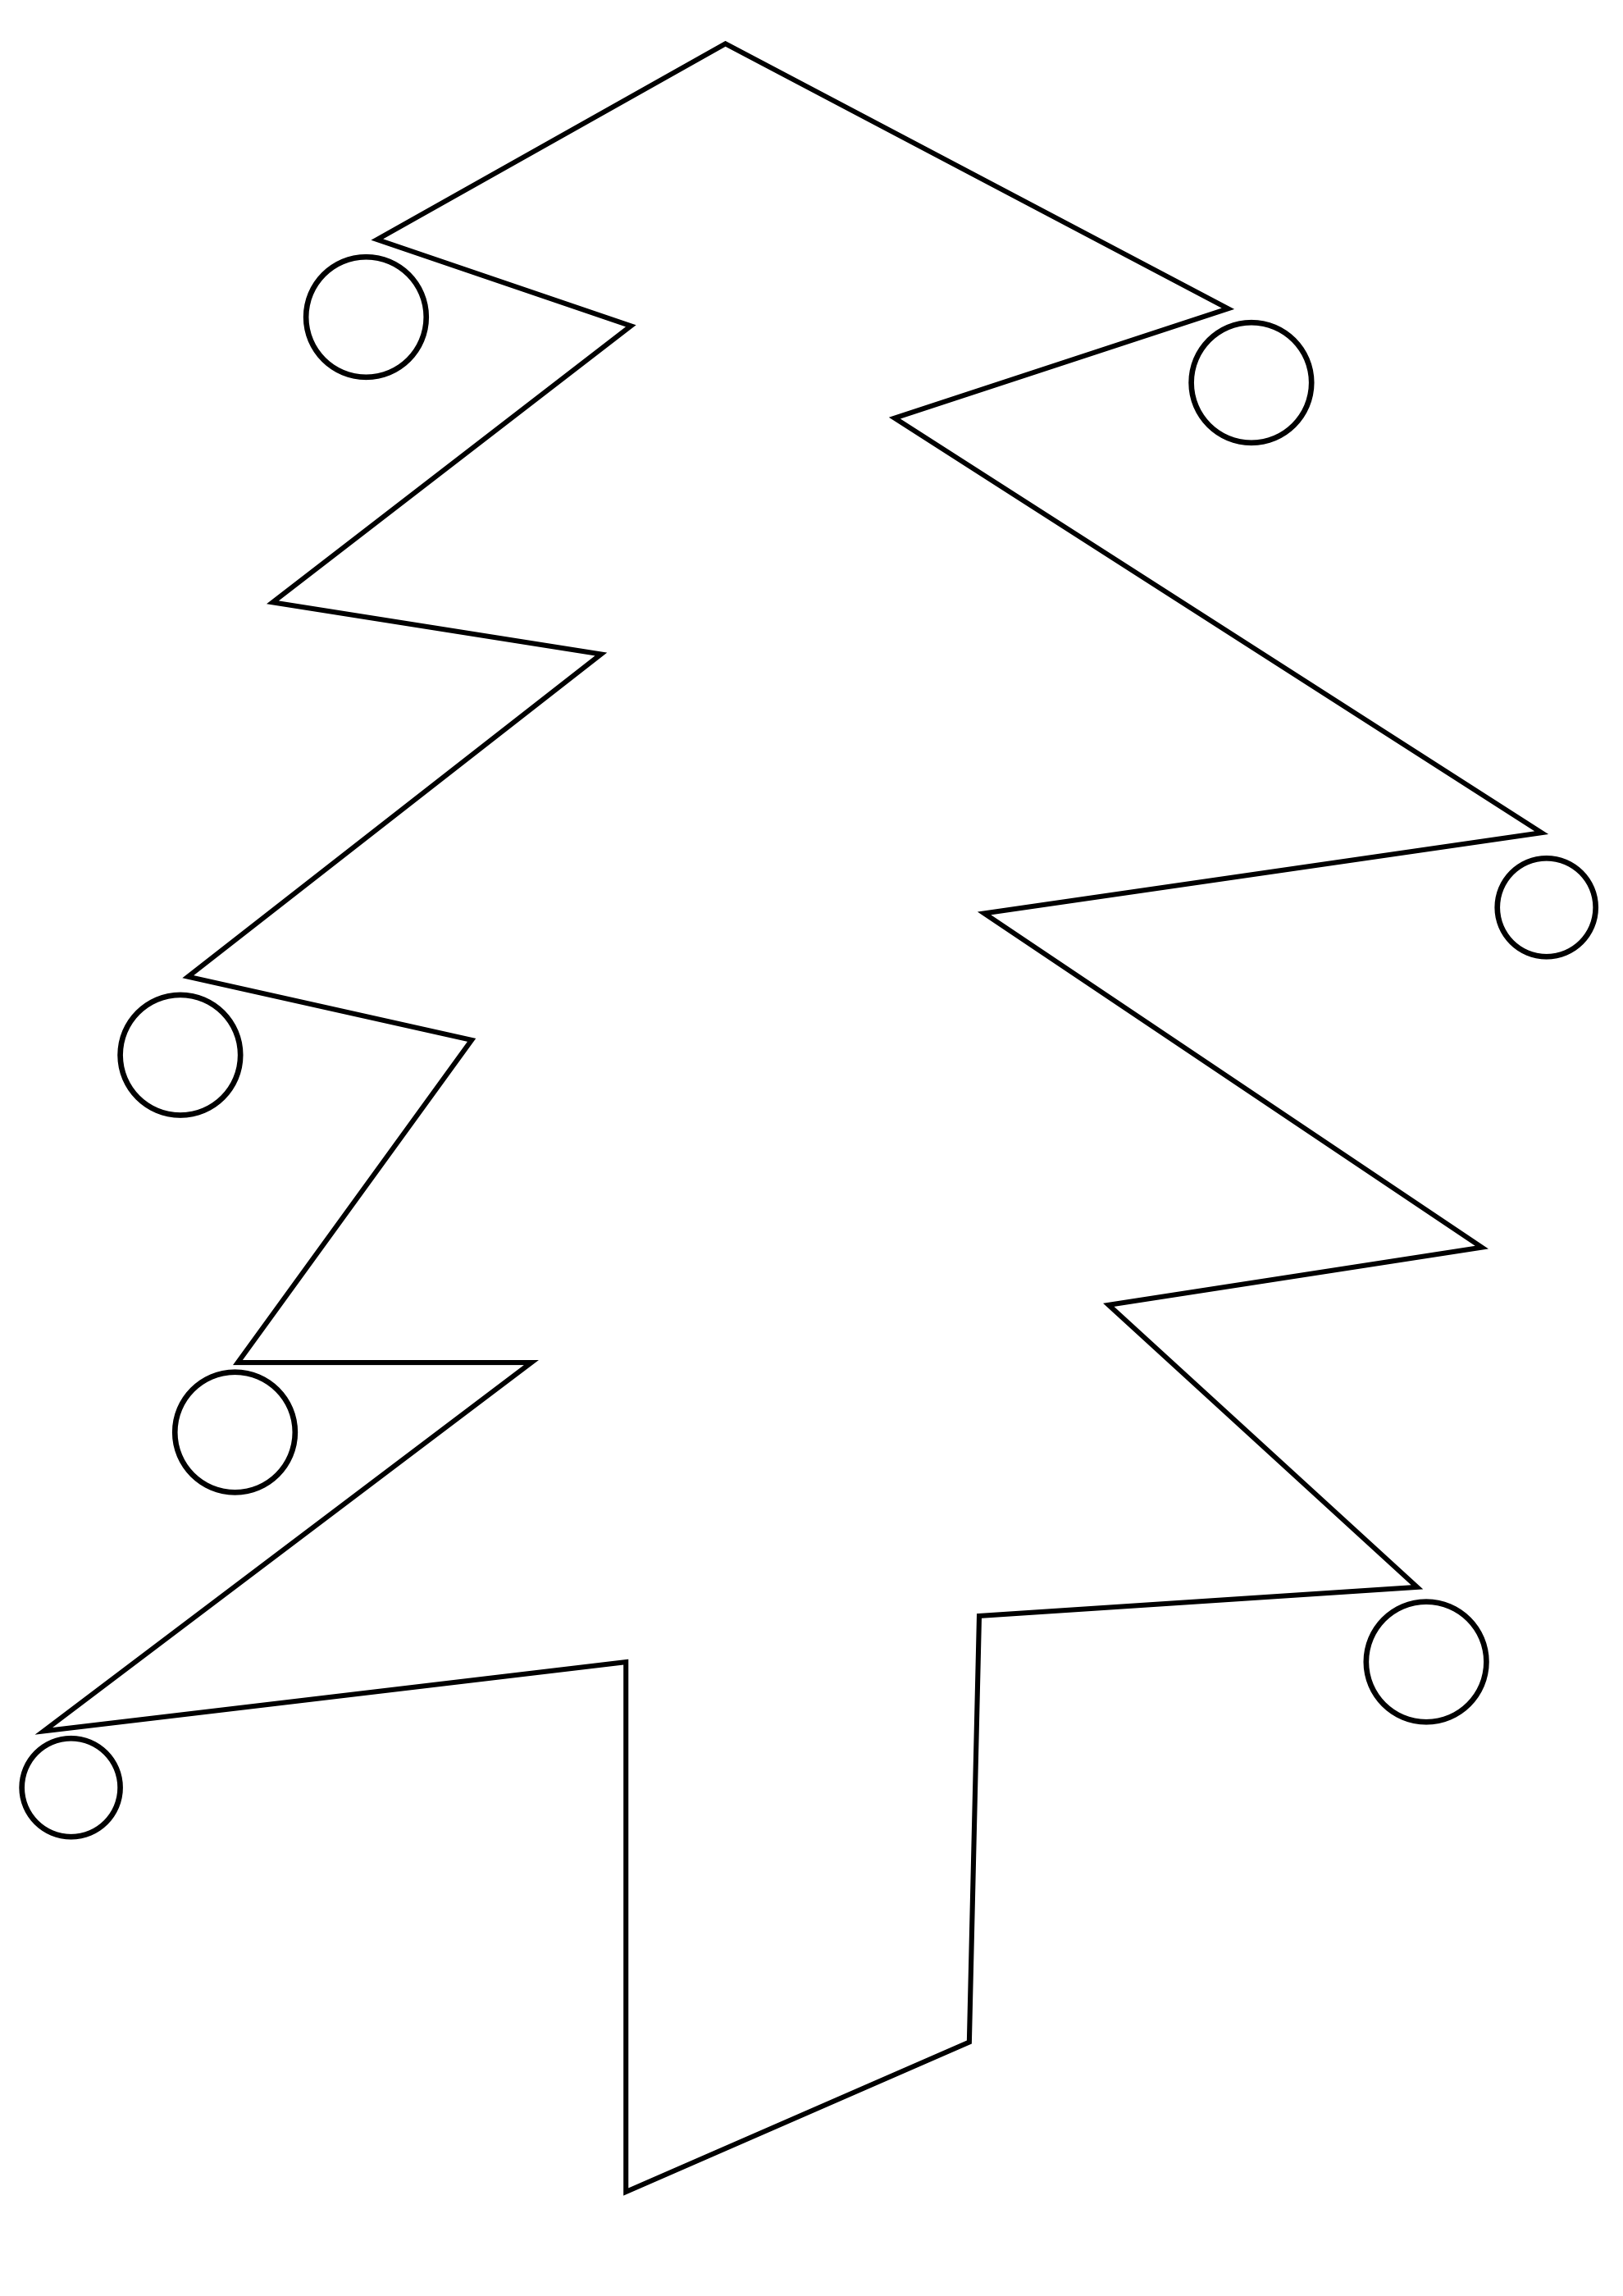 Christmas black and white clipart clip royalty free library Christmas tree black and white free christmas tree clipart - WikiClipArt clip royalty free library